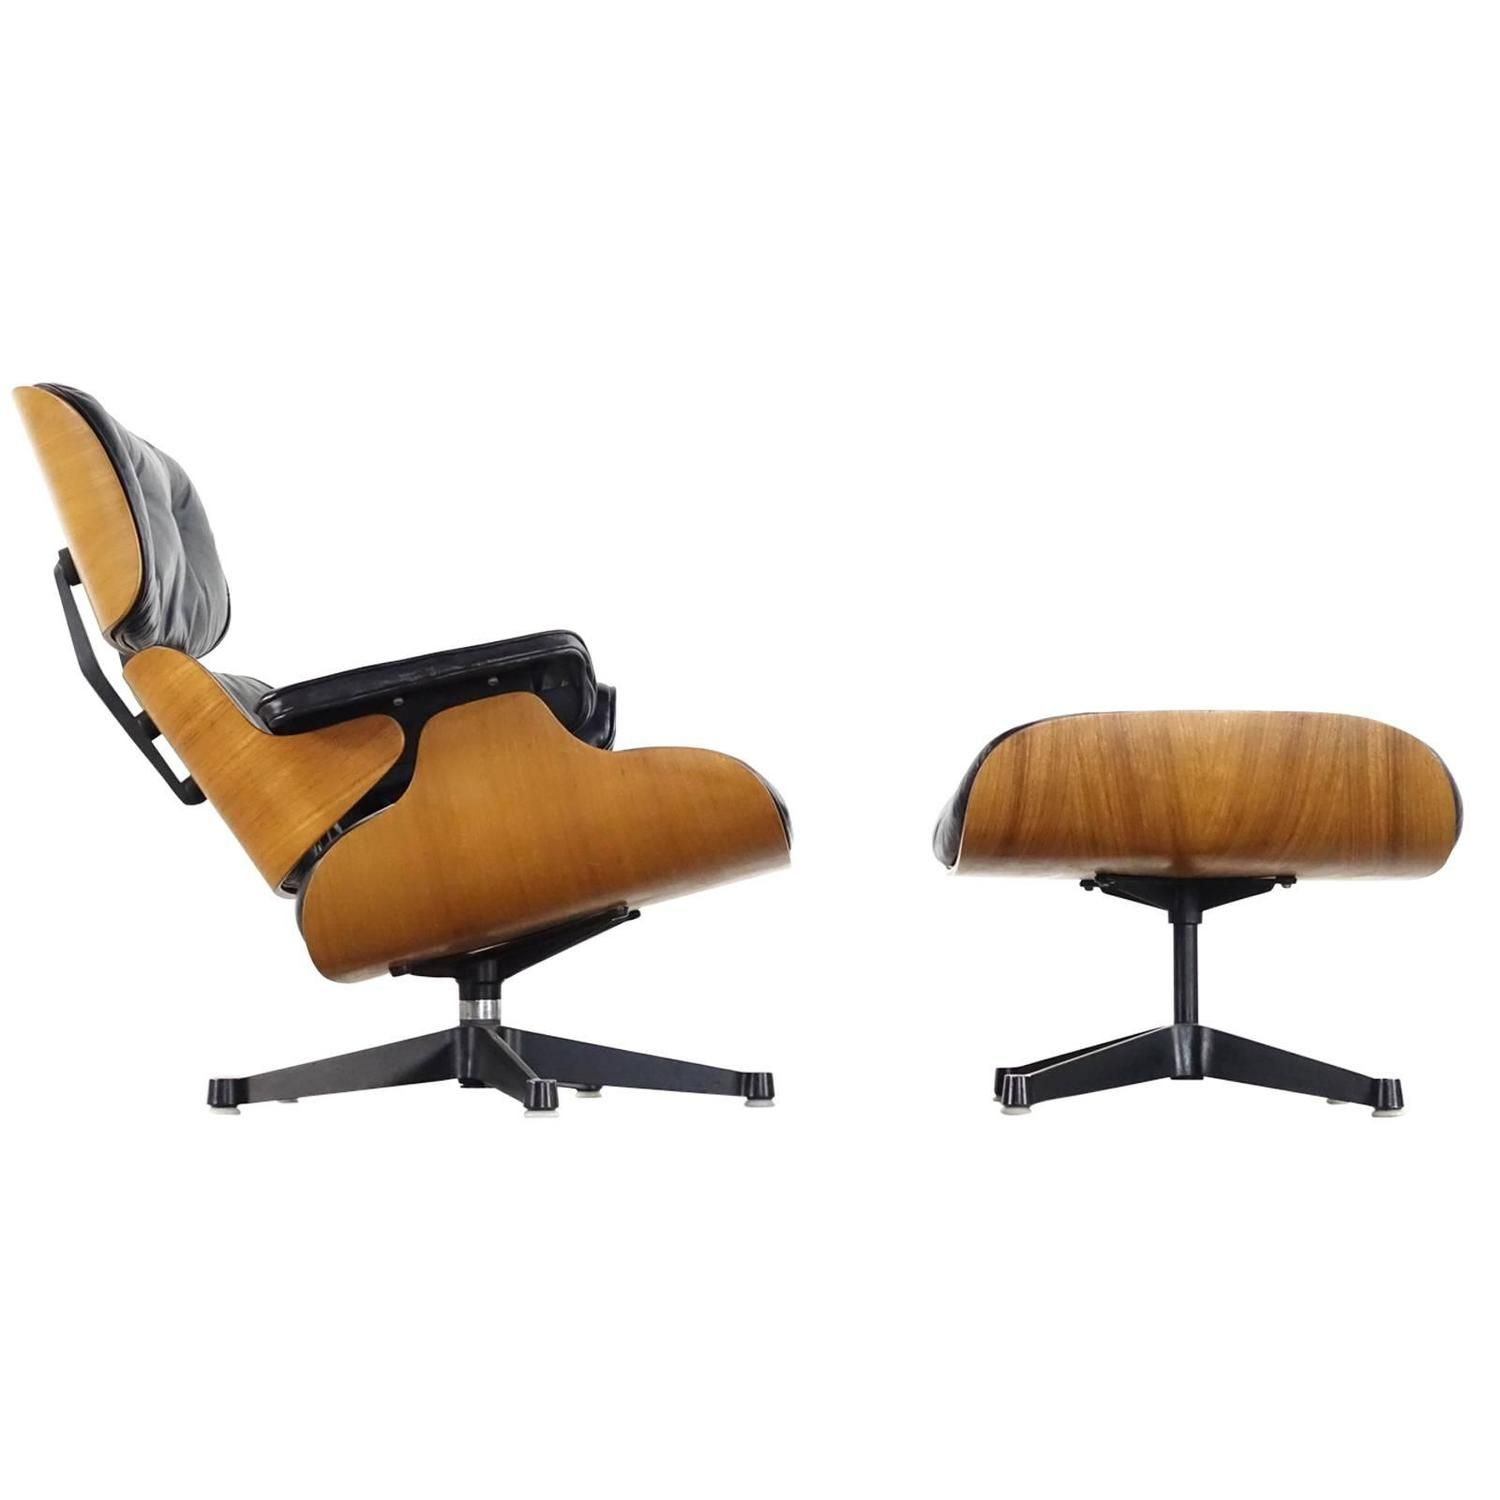 Very Early Charles & Ray Eames Lounge Chair from Contura